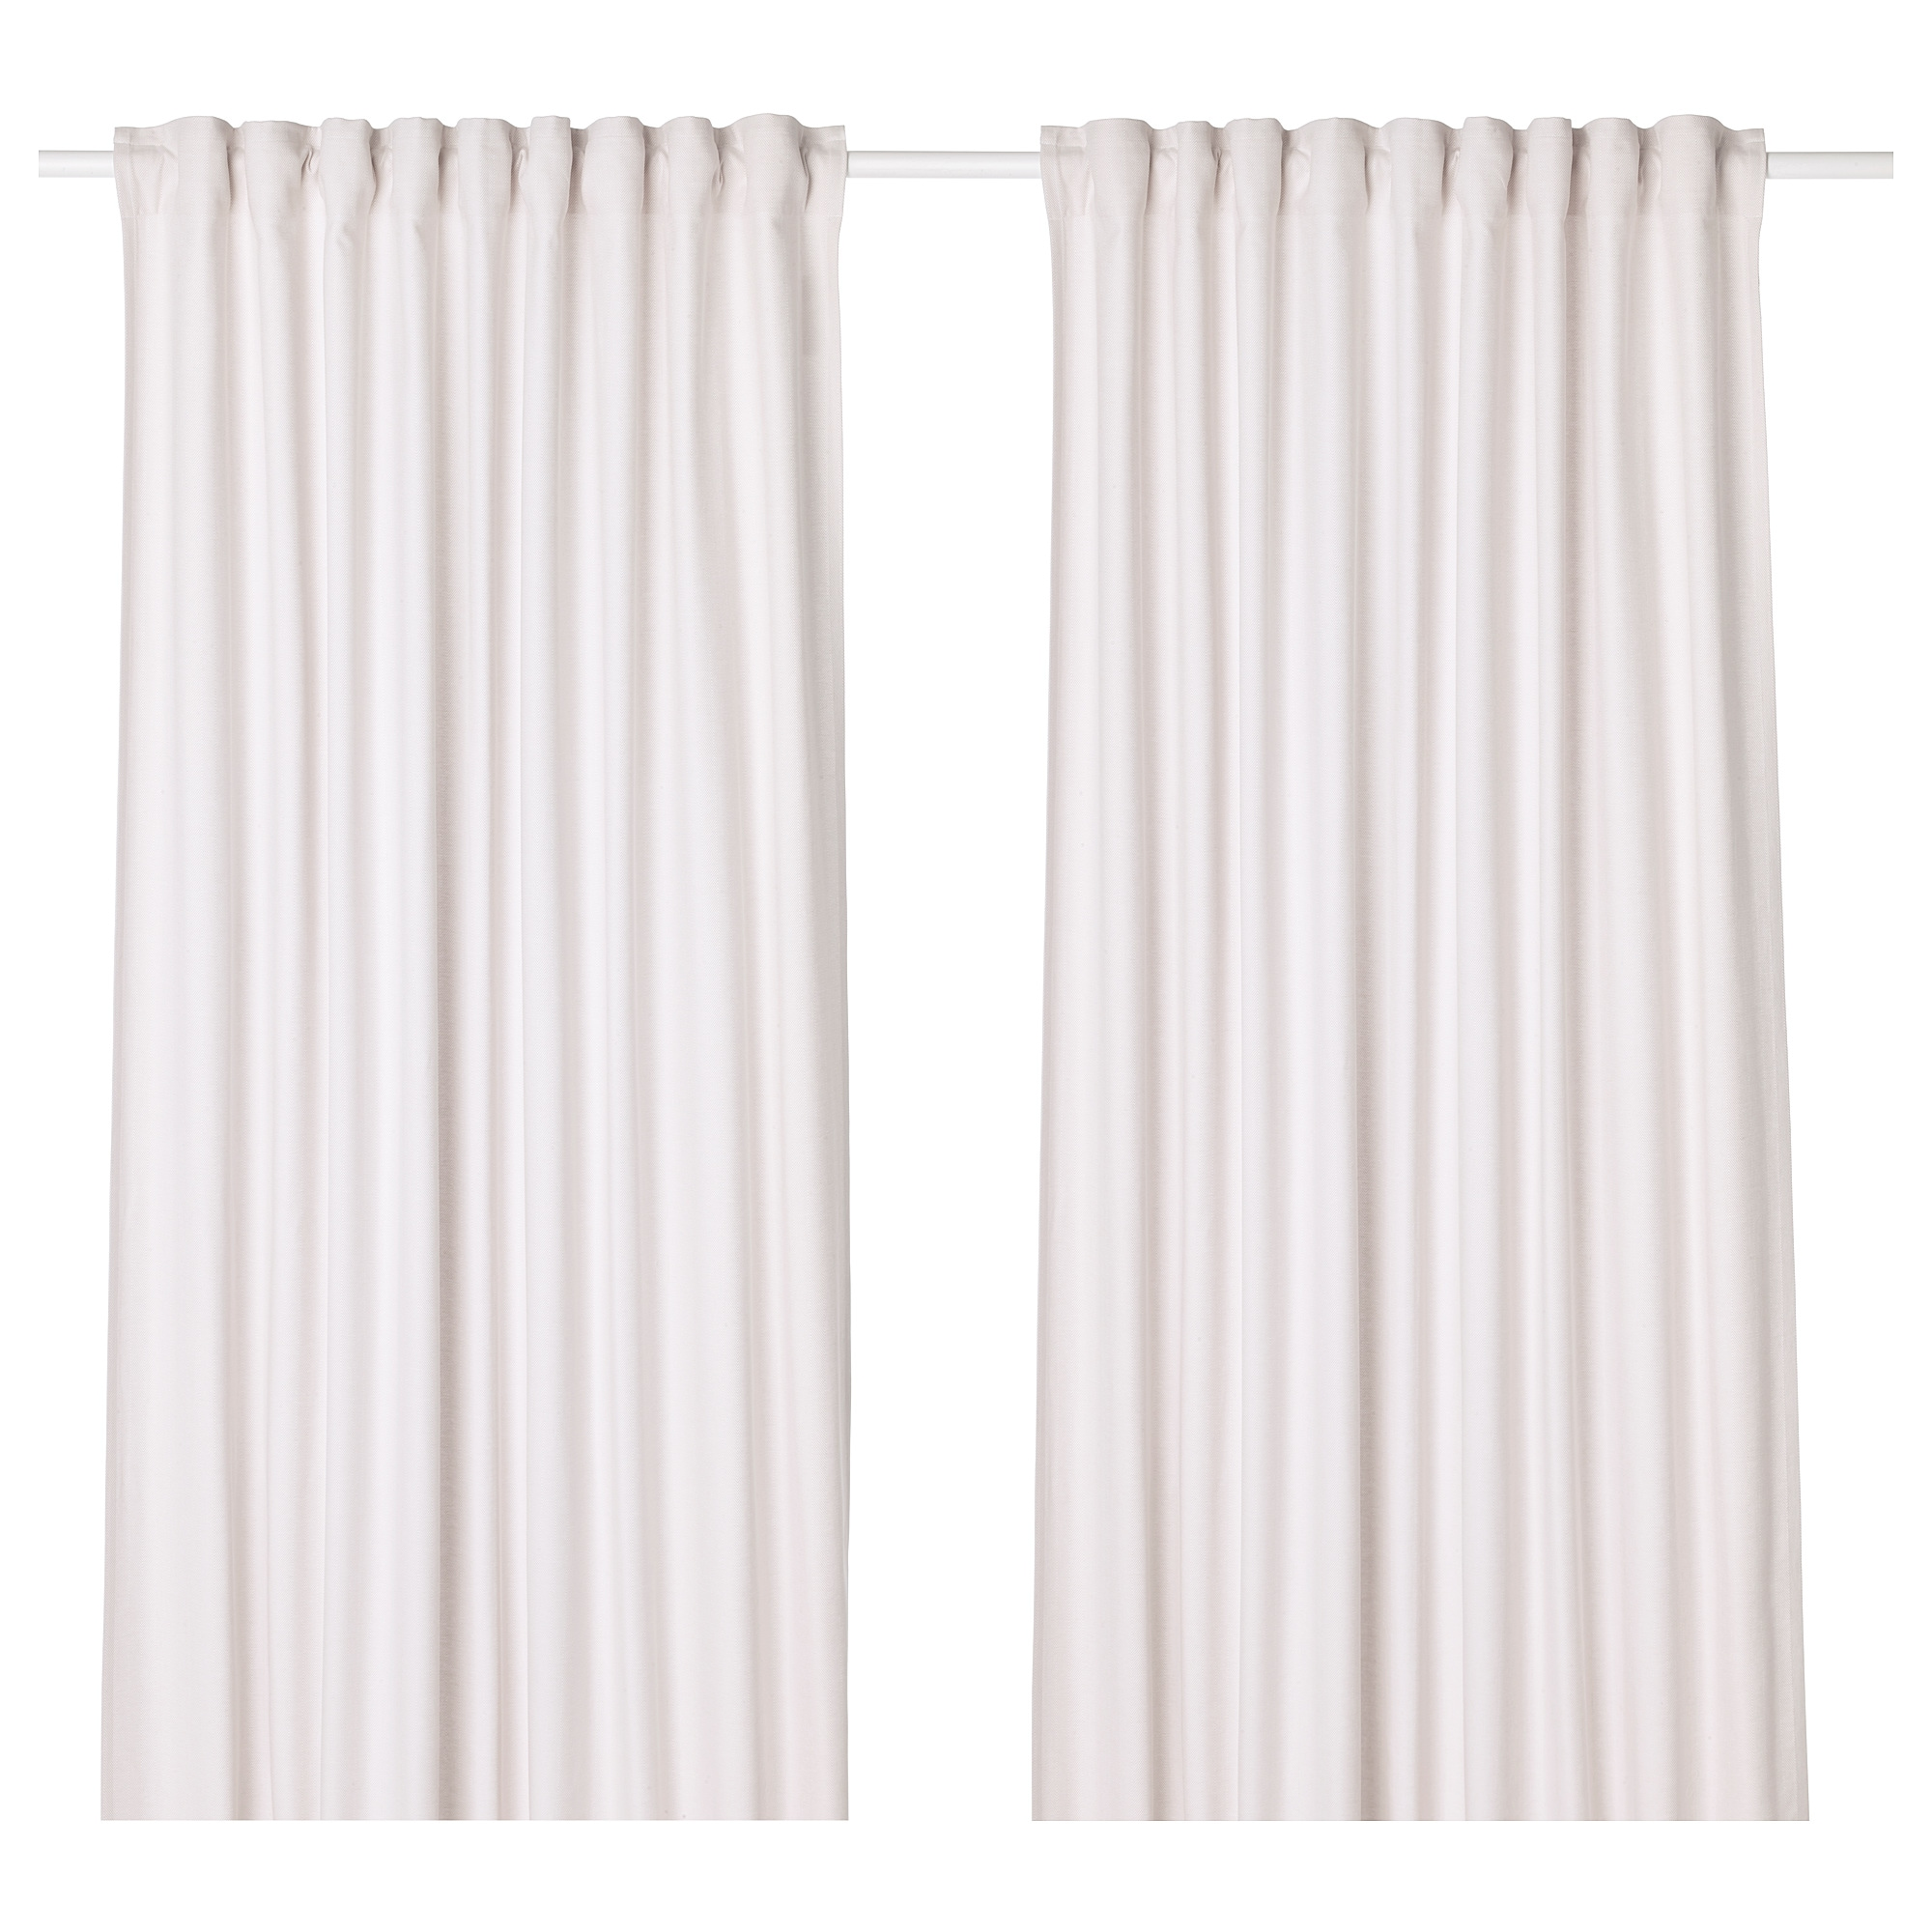 Tibast Curtains 1 Pair Beige 57x98 Ikea Curtains Curtains With Rings Ikea